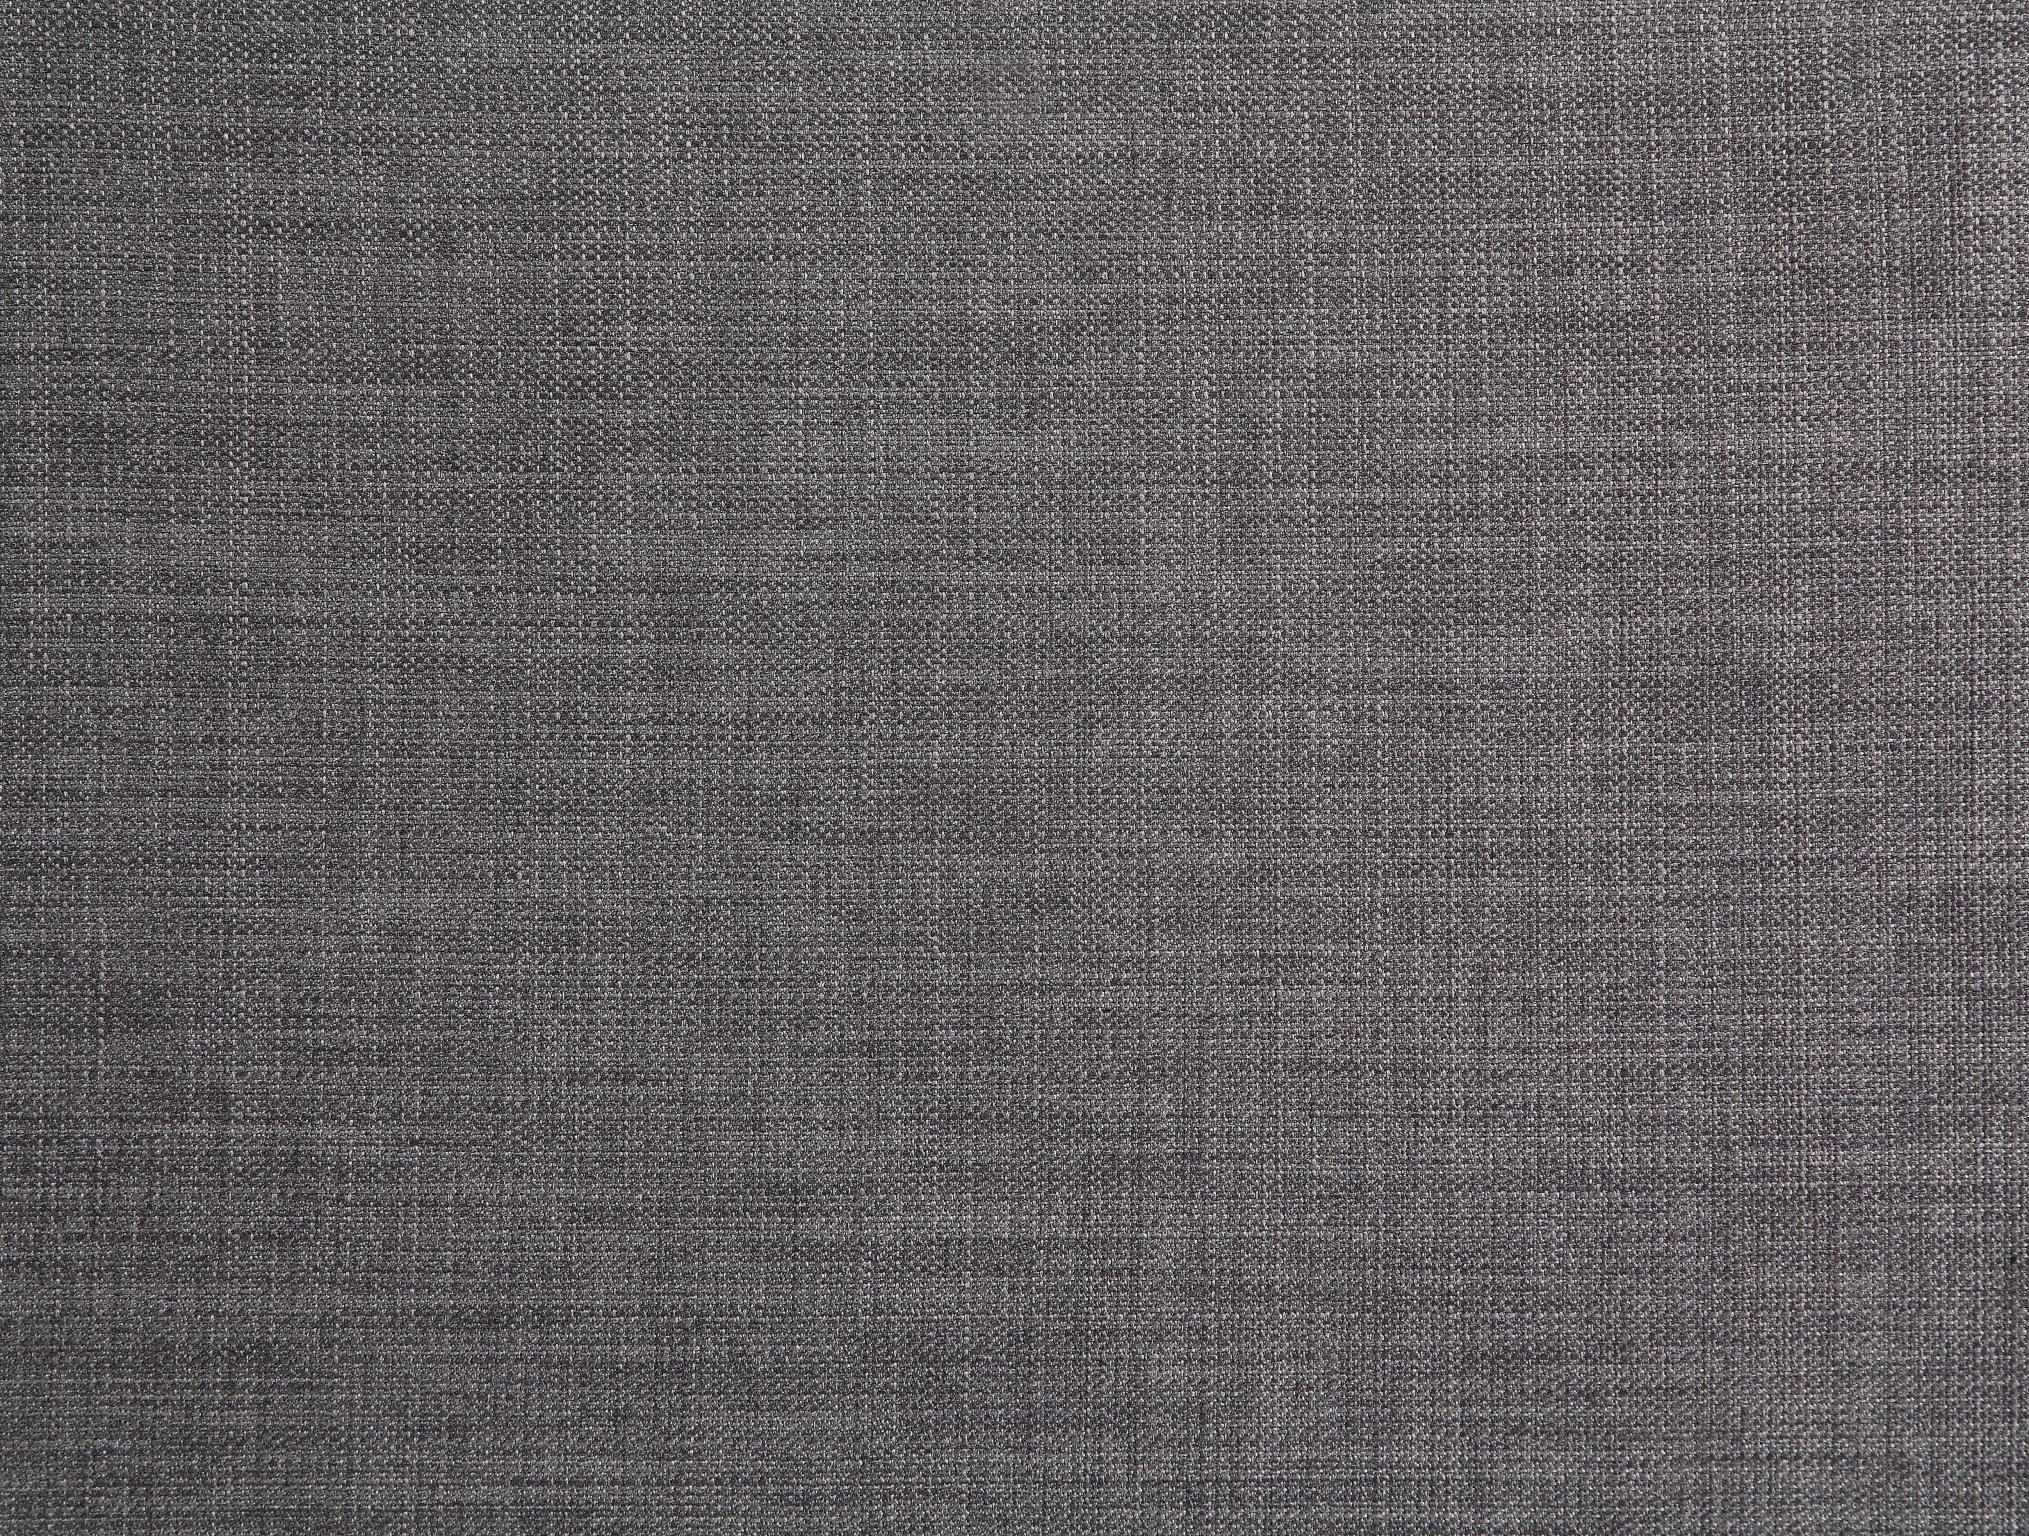 Light Charcoal Linen Upholstery Finish